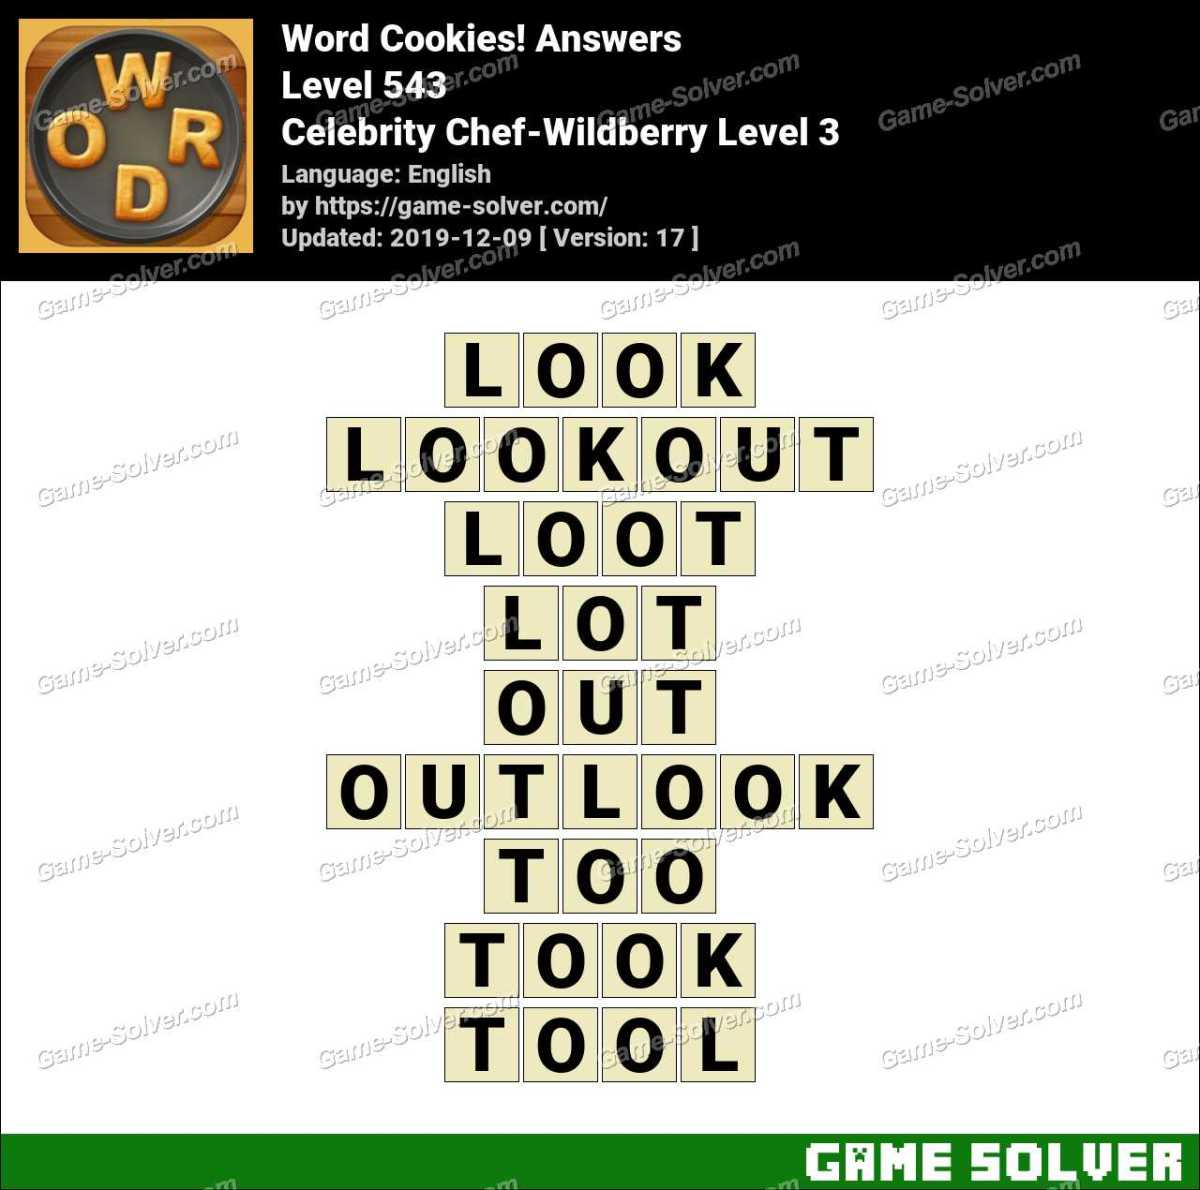 Word Cookies Celebrity Chef-Wildberry Level 3 Answers